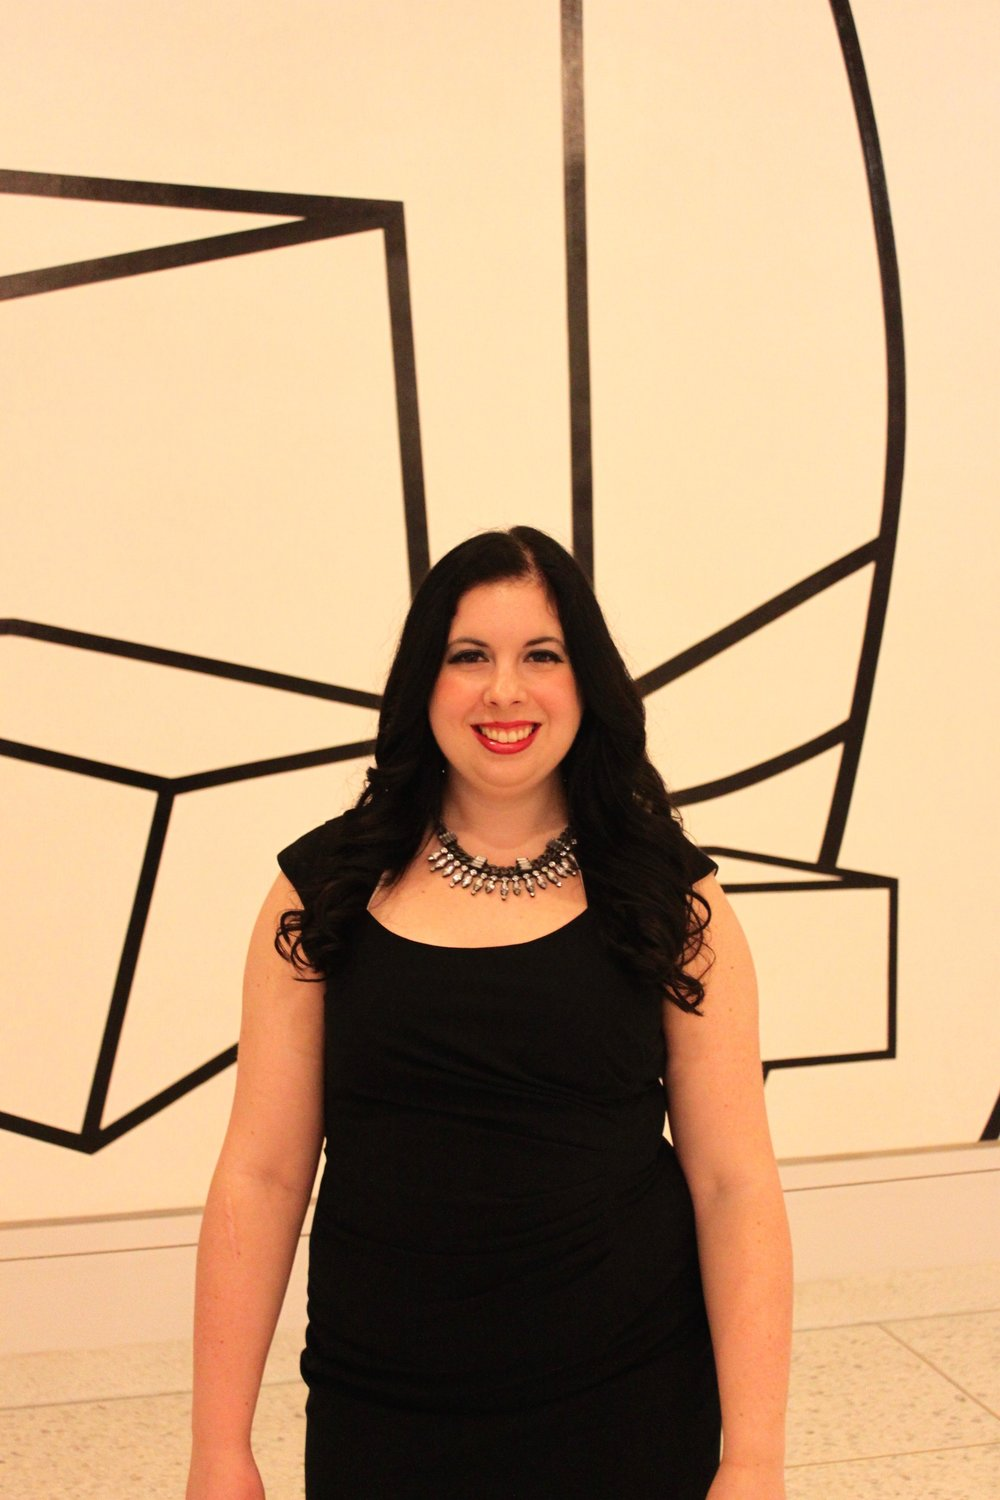 Helen O'Rourke, Tenor Section Manager   Helen joined Sirens of Gotham in January 2016.  This is her first experience singing barbershop, and what a wonderful experience it has been!  In New York, she has been a member of contemporary a cappella group The Callbacks, as well as the Fieldston Choral Society.  She holds a Bachelor of Arts in Theatre Arts and Music from Drew University, where she was a member of the Drew University Chorale, Madrigal Singers, and Musical Director for the all-female a cappella group On A Different Note.  She has been singing in various groups since she was 5, and will continue to do so as long as they will have her.